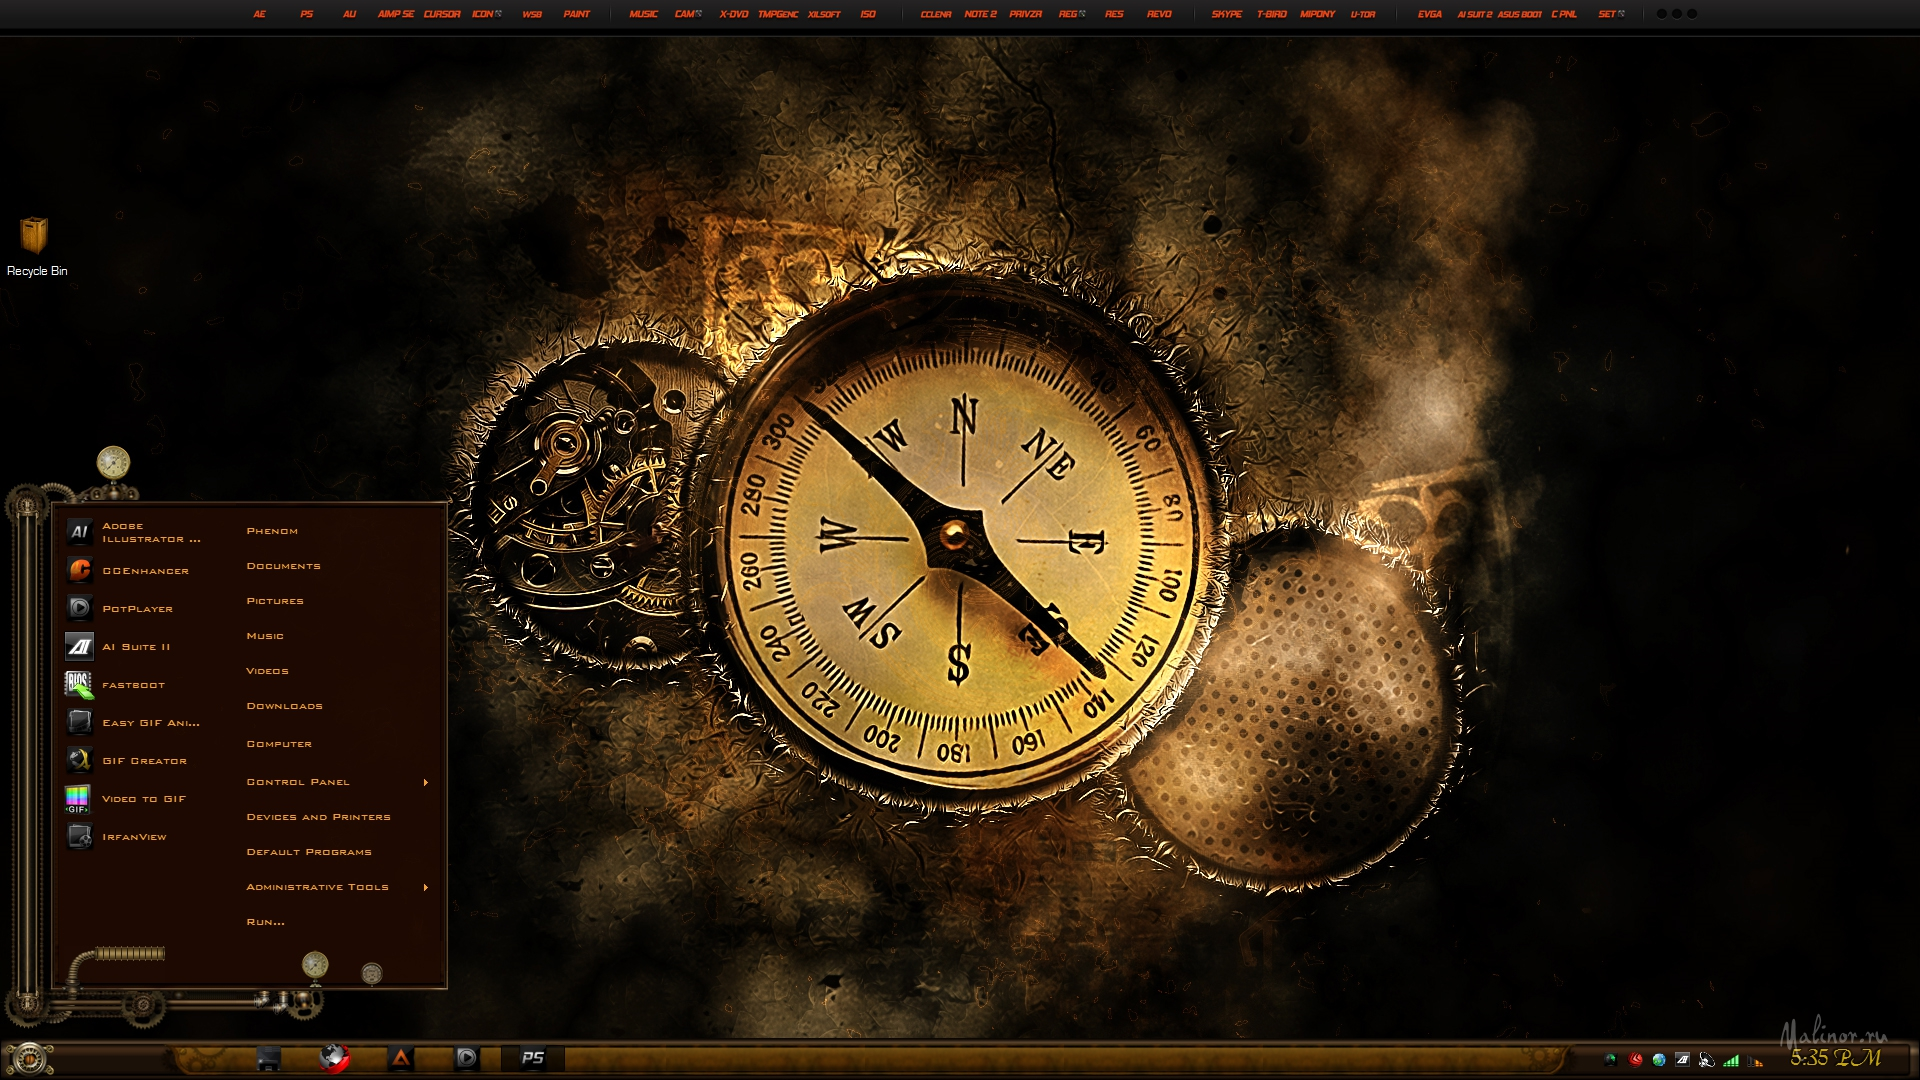 Steampunk - ���� ��� Windows 7